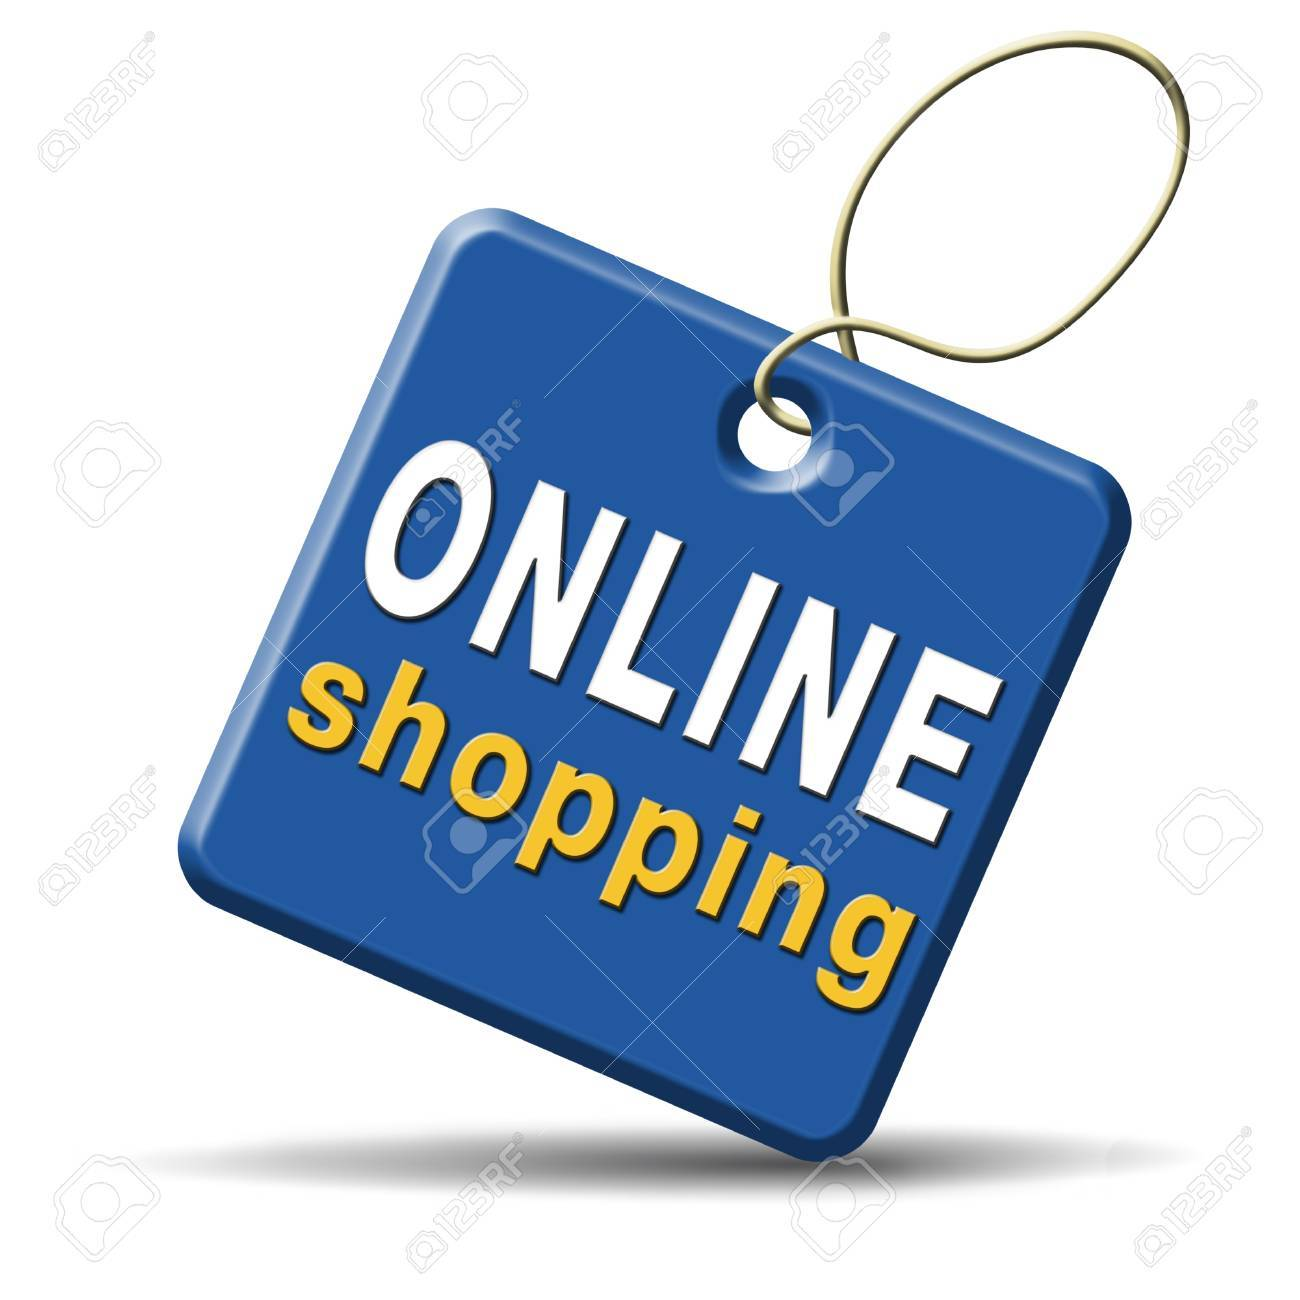 b6b2014f91 online shopping internet web shop webshop icon or button Stock Photo -  23992943